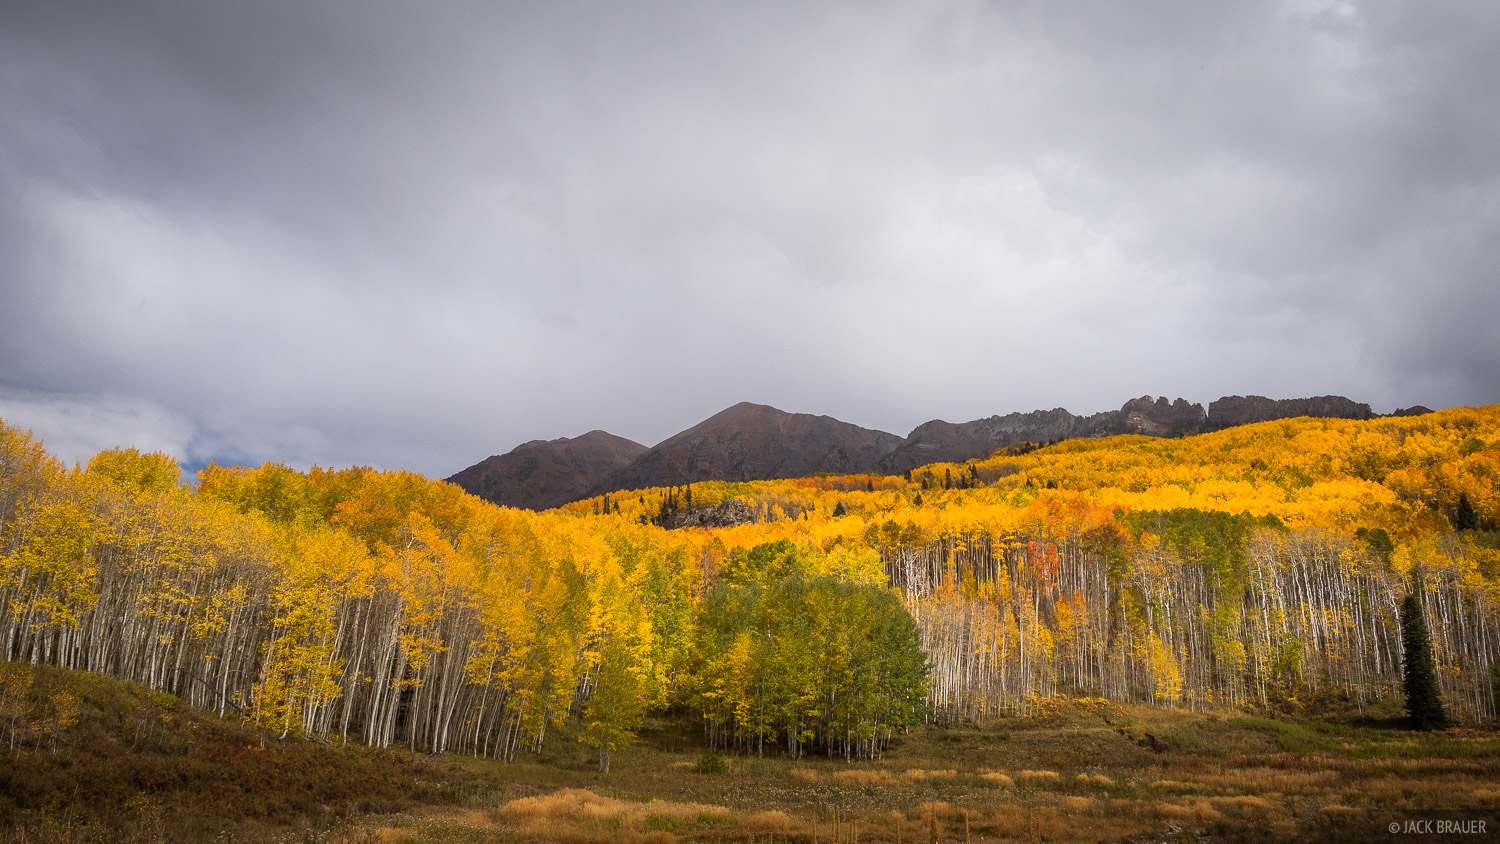 Rainy weather and colorful aspens near Kebler Pass - October.